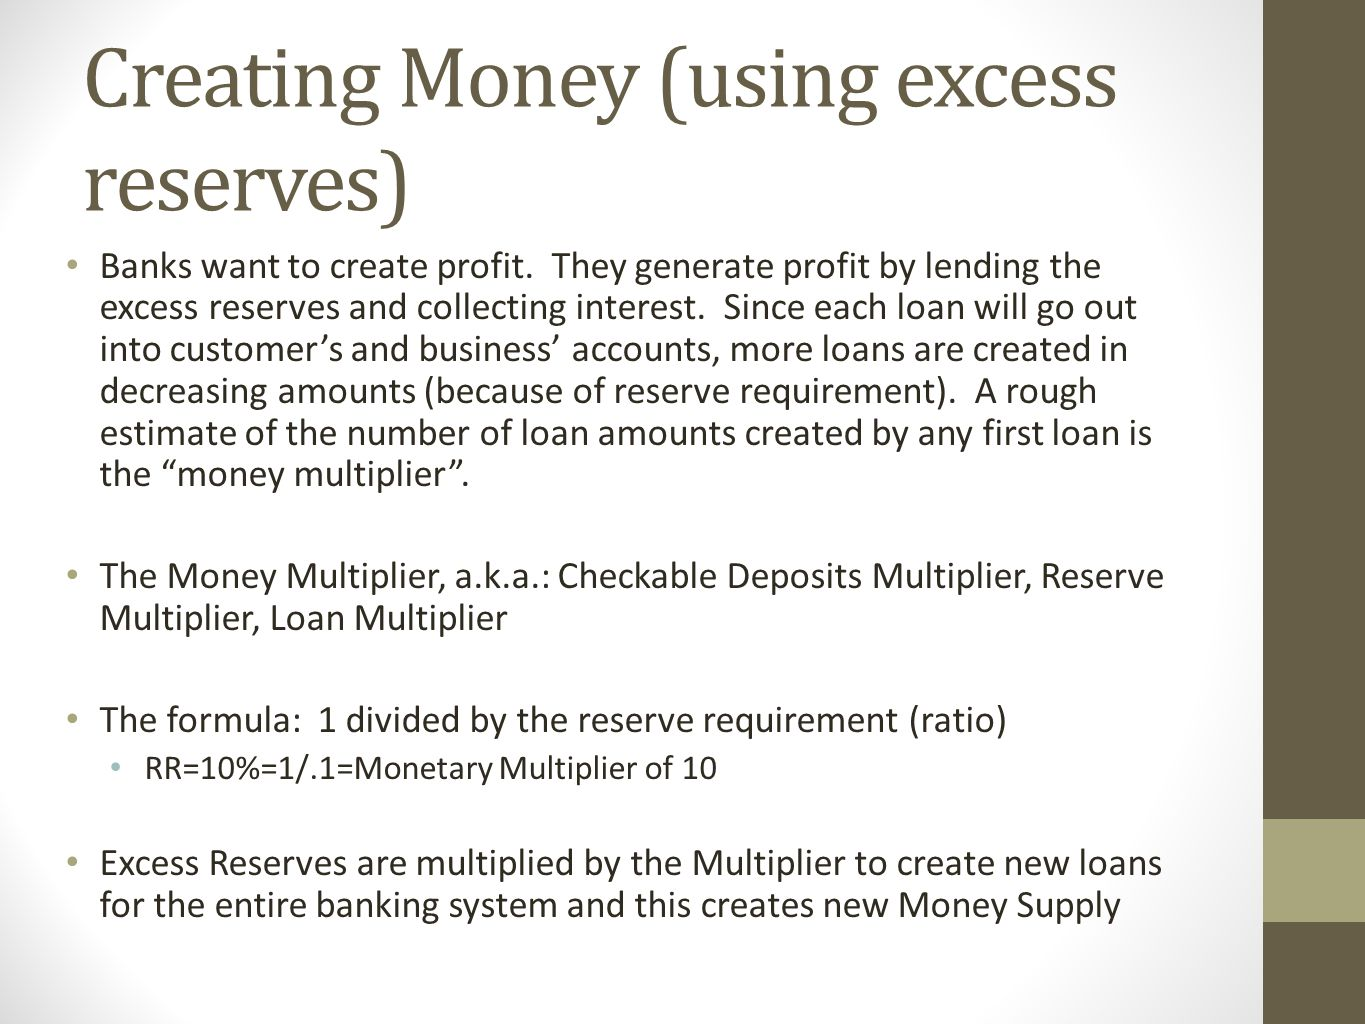 Summary Bank Balance Sheet Asses and Liabilities in a T Account Liabilities DD and Owner's Equity (Stock Shares) Assets RR, ER, Bank Property, Securities, Loans Assets must equal Liabilities DD=RR+ER Money is Created through Monetary Multiplier ER x 1/RR (Multiplier)=New Loans throughout the banking system The Money Suplply is affected Cash from citizens becomes a DD, but does NOT change the Money Supply; the ER from this cash becomes an immediate loan amount ER x Multiplier become New Loans and DO change the Money Supply The Fed Buying bonds creates new loans and changes the Money Supply If the Fed buys bonds on the open market, this also beocmes a new DD amount; if the Fed buys bonds from accounts already held by a particular bank, then the amount only becomes new Excess Reserves Finally, bond prices move opposite to the changes in interest rates Higher interest rates will push bond prices downward (less money supply) Lower interest rates will push bond prices upward more money supply)